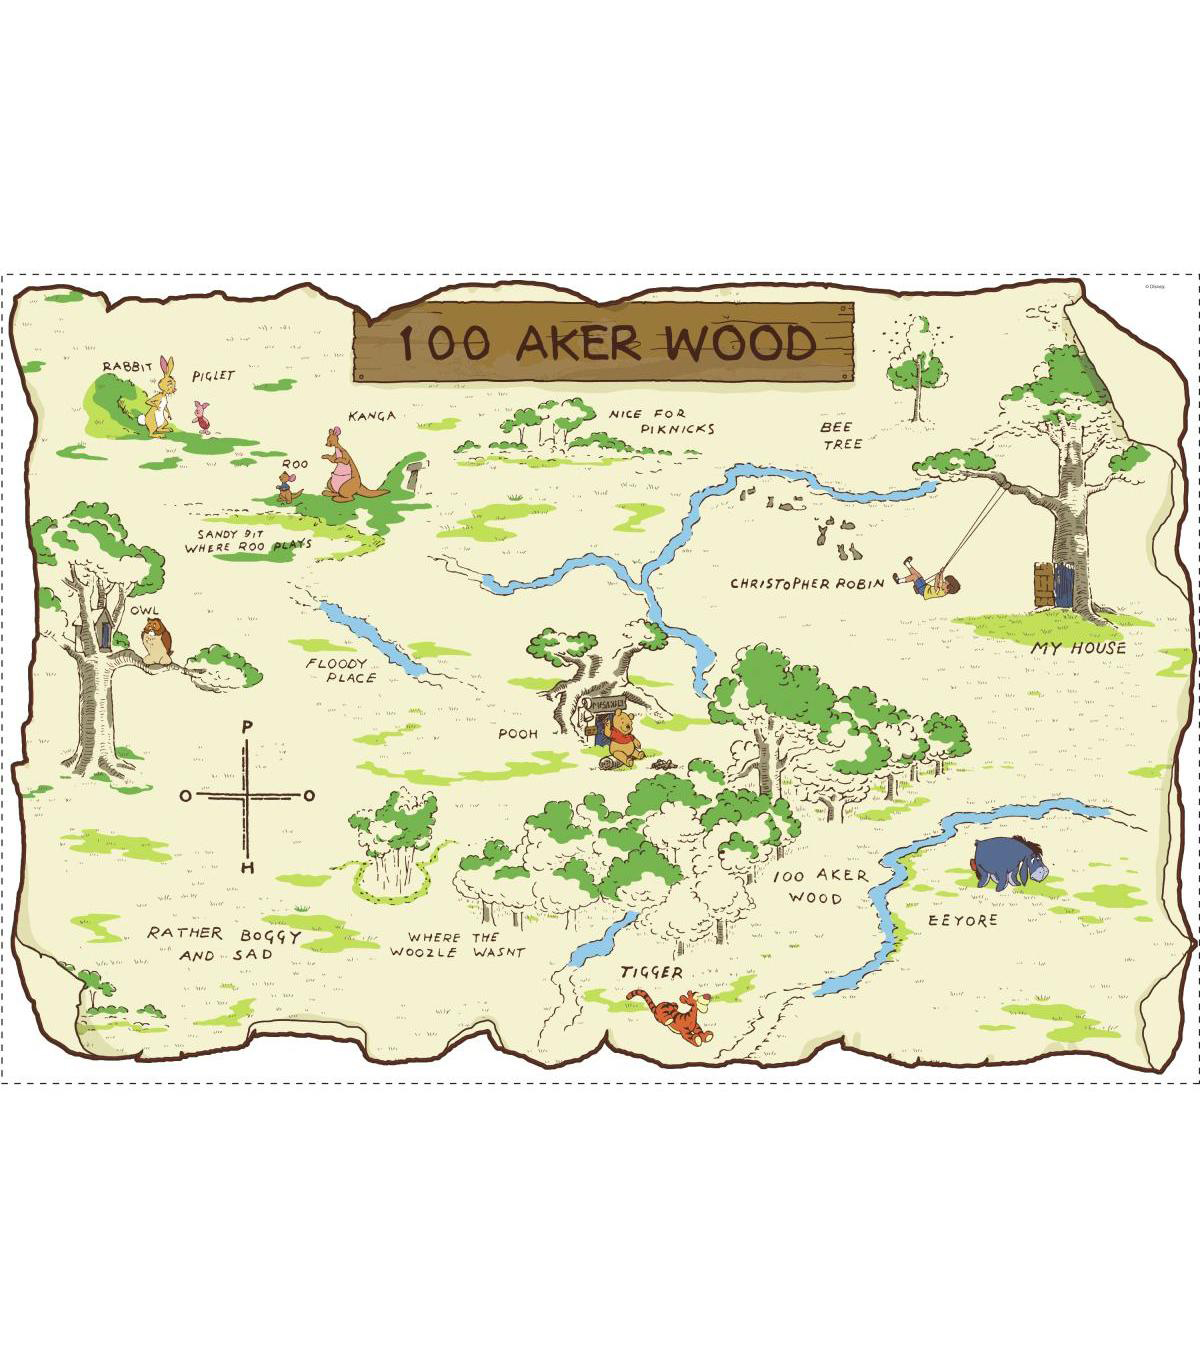 York Wallcoverings Peel & Stick Map-Winnie The Pooh 100 Aker Wood